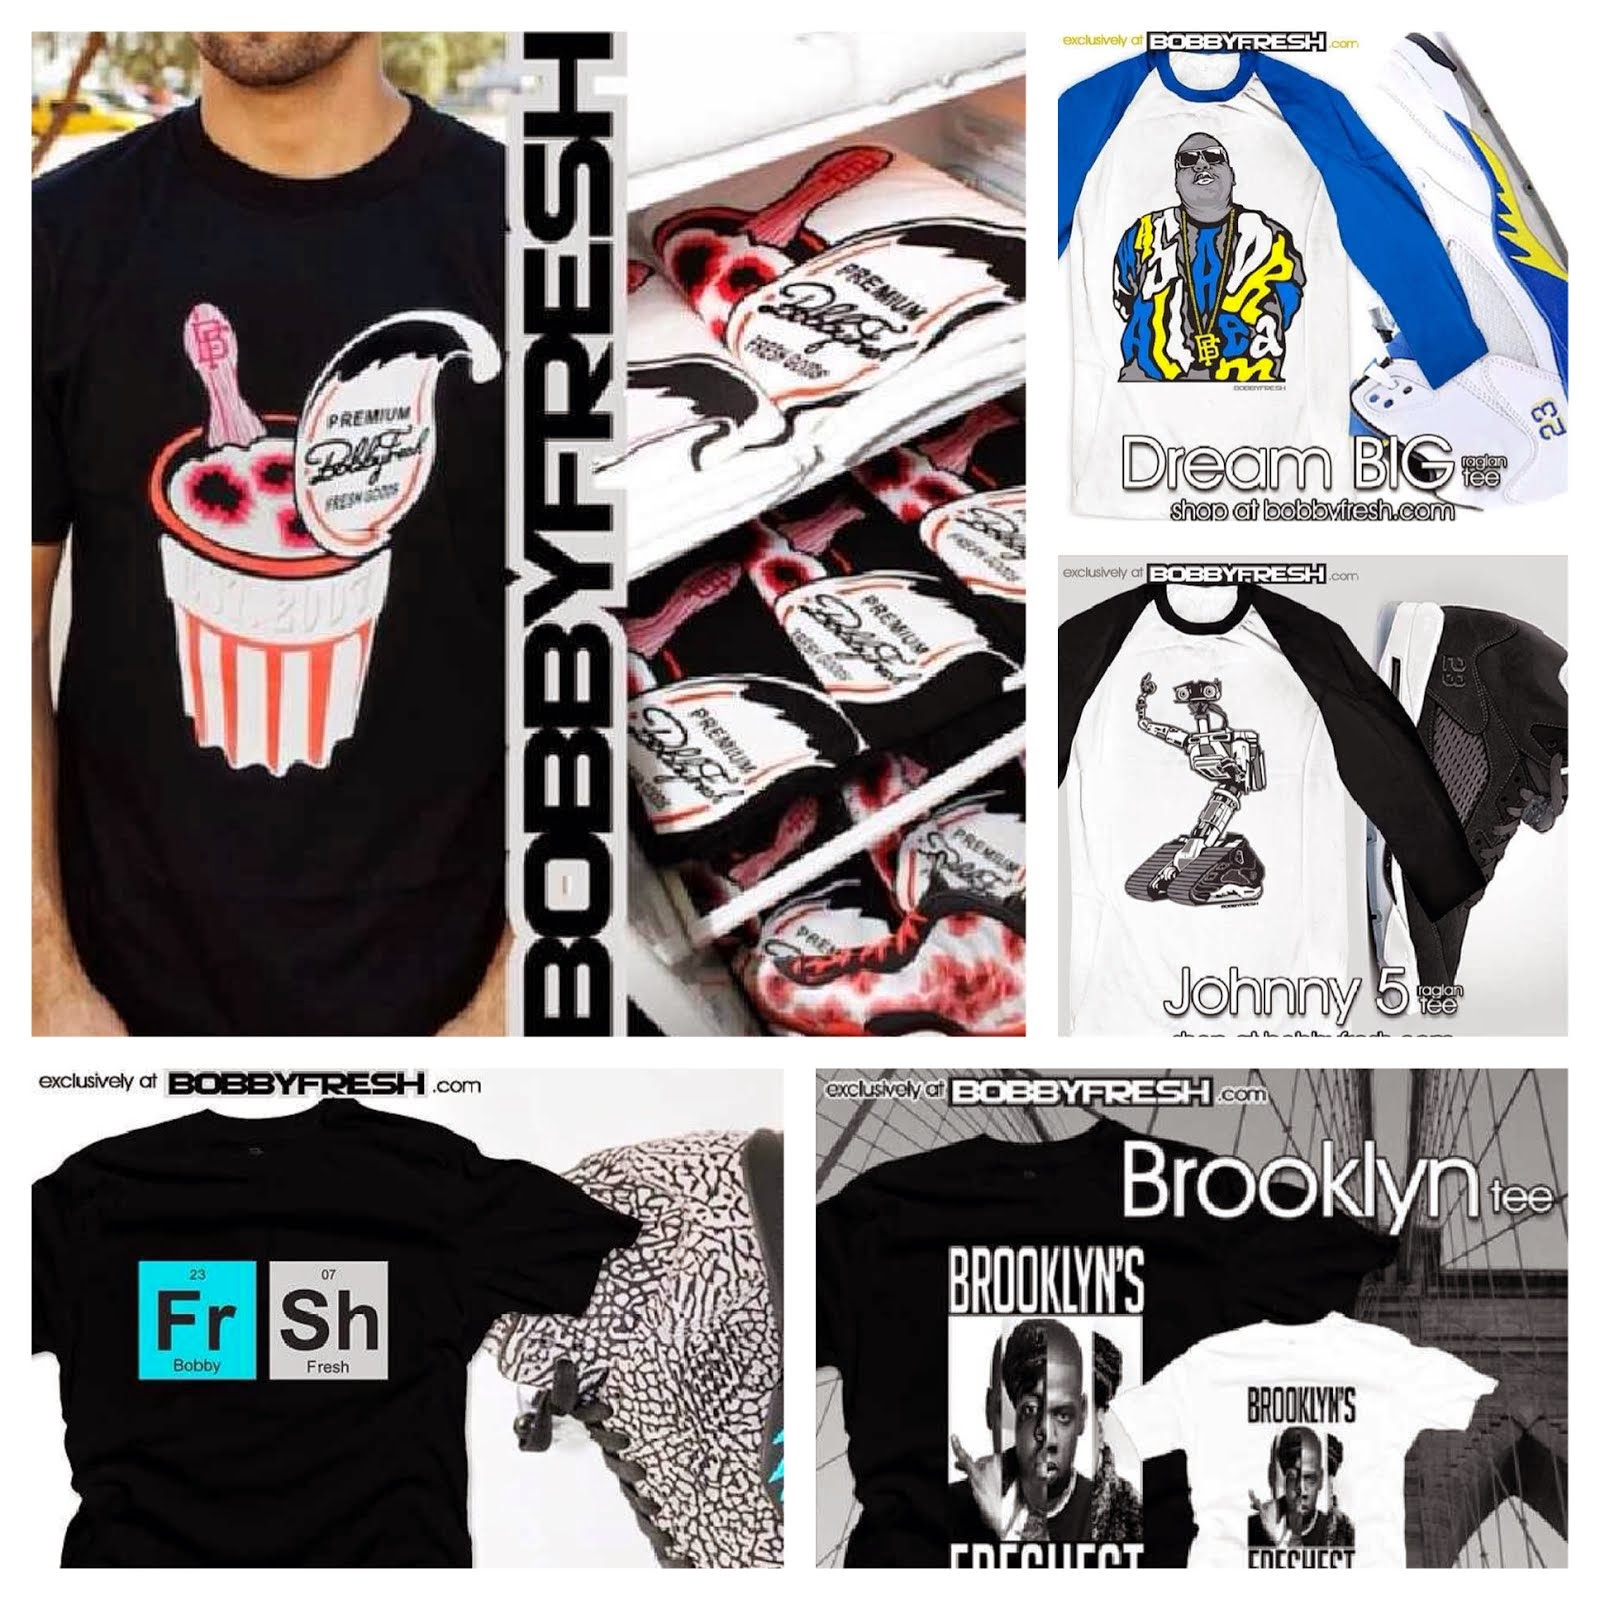 BOBBY FRESH CLOTHING